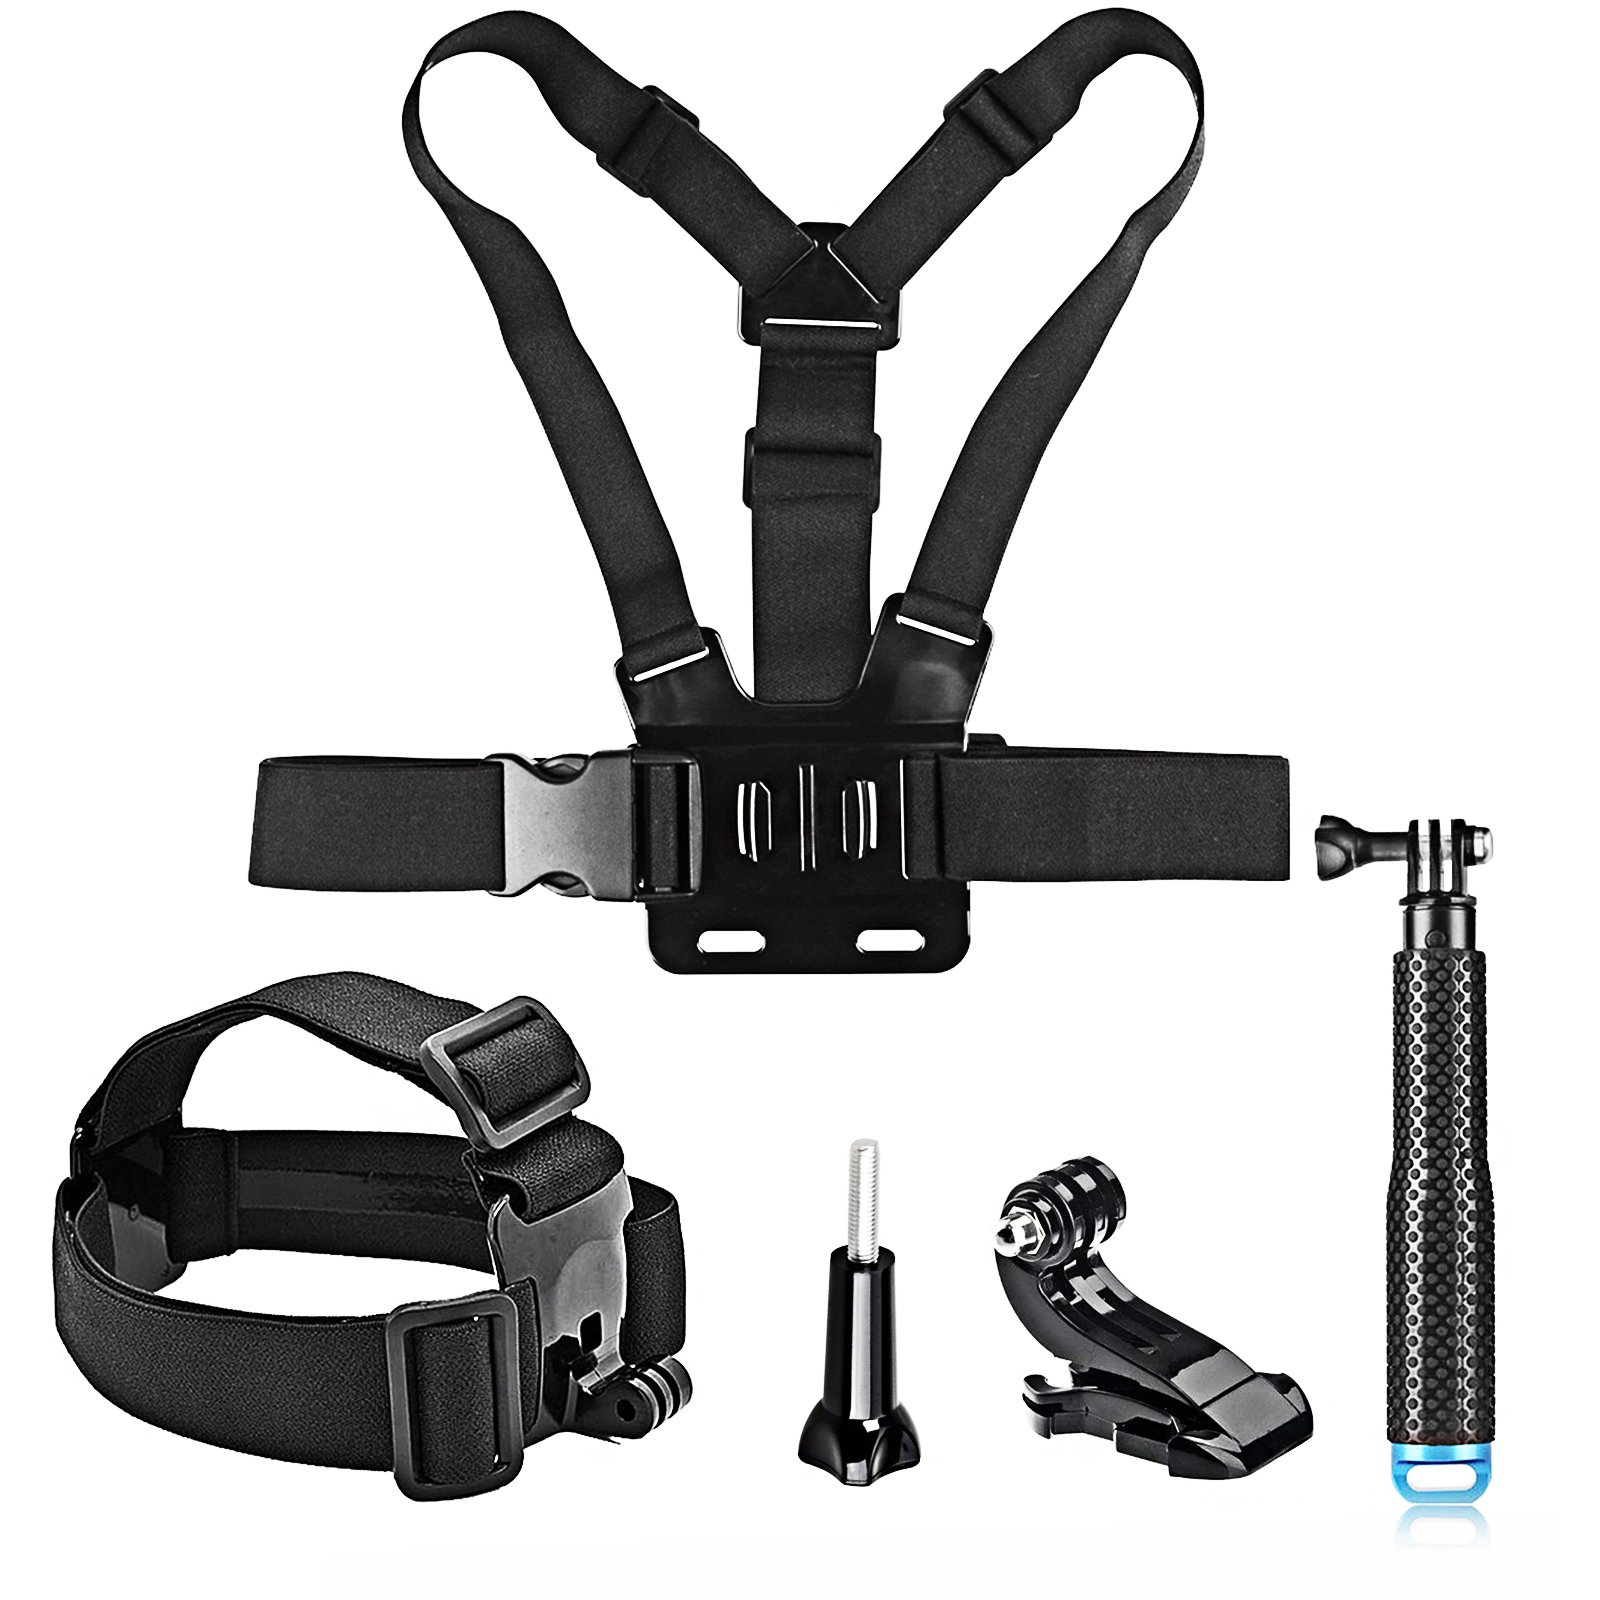 SHOOT Action Camera Accessory Kit included Head Strap Mount+ Chest Belt Strap Harness Mount+ Selfie Stick Handheld Monopod for GoPro Hero 8/7/6/5/ APEMAN/AKASO/Panasonic/DBPOWER/CAMKONG/WiMiUS